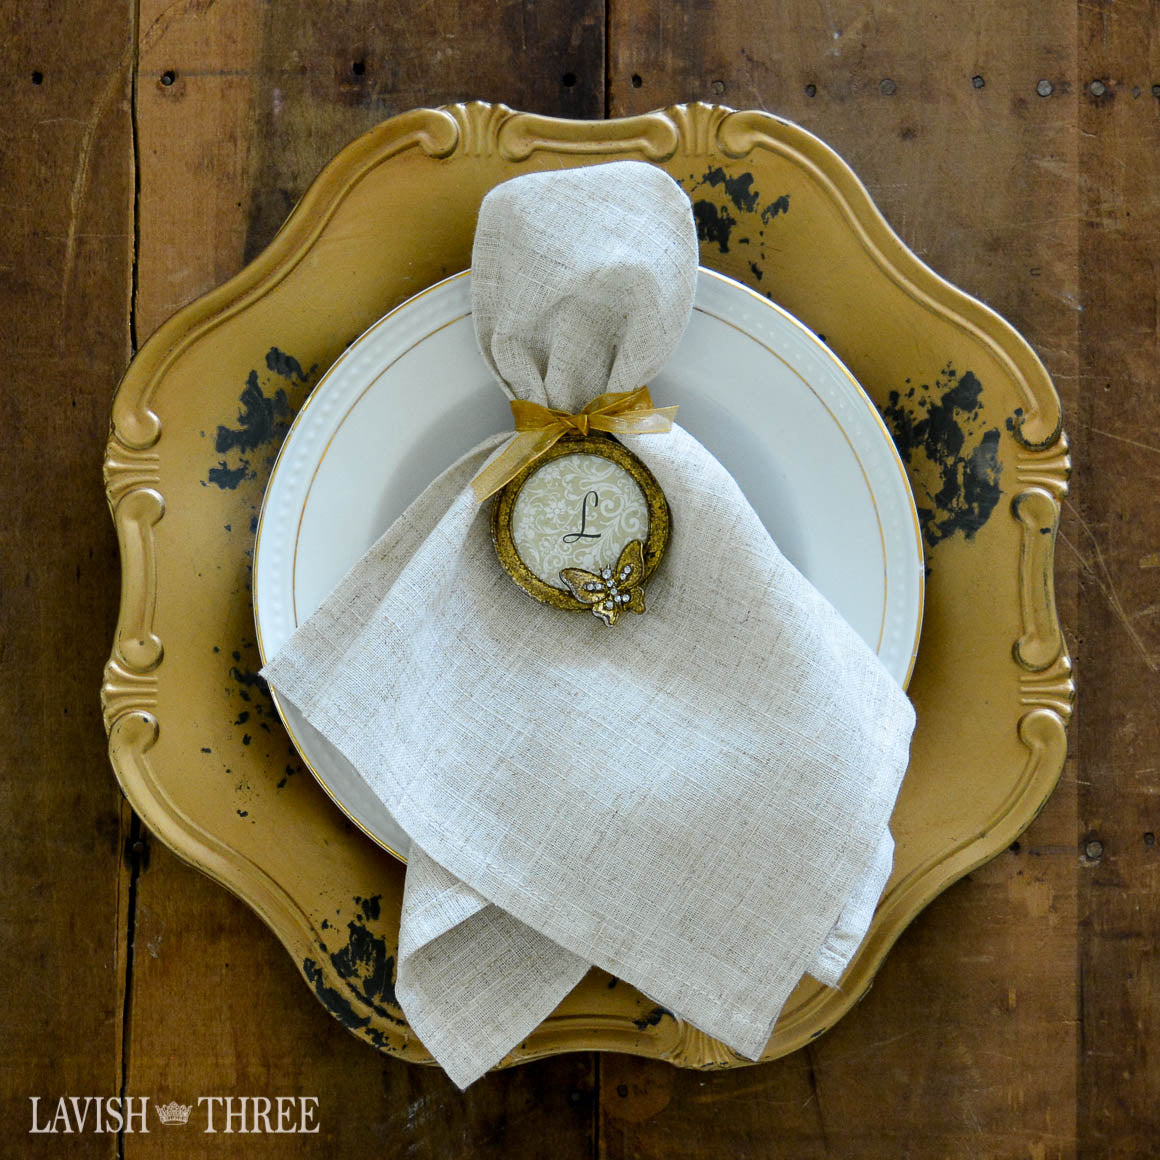 Lavish lifestyle blog golden age of dining, Lavish Three 3